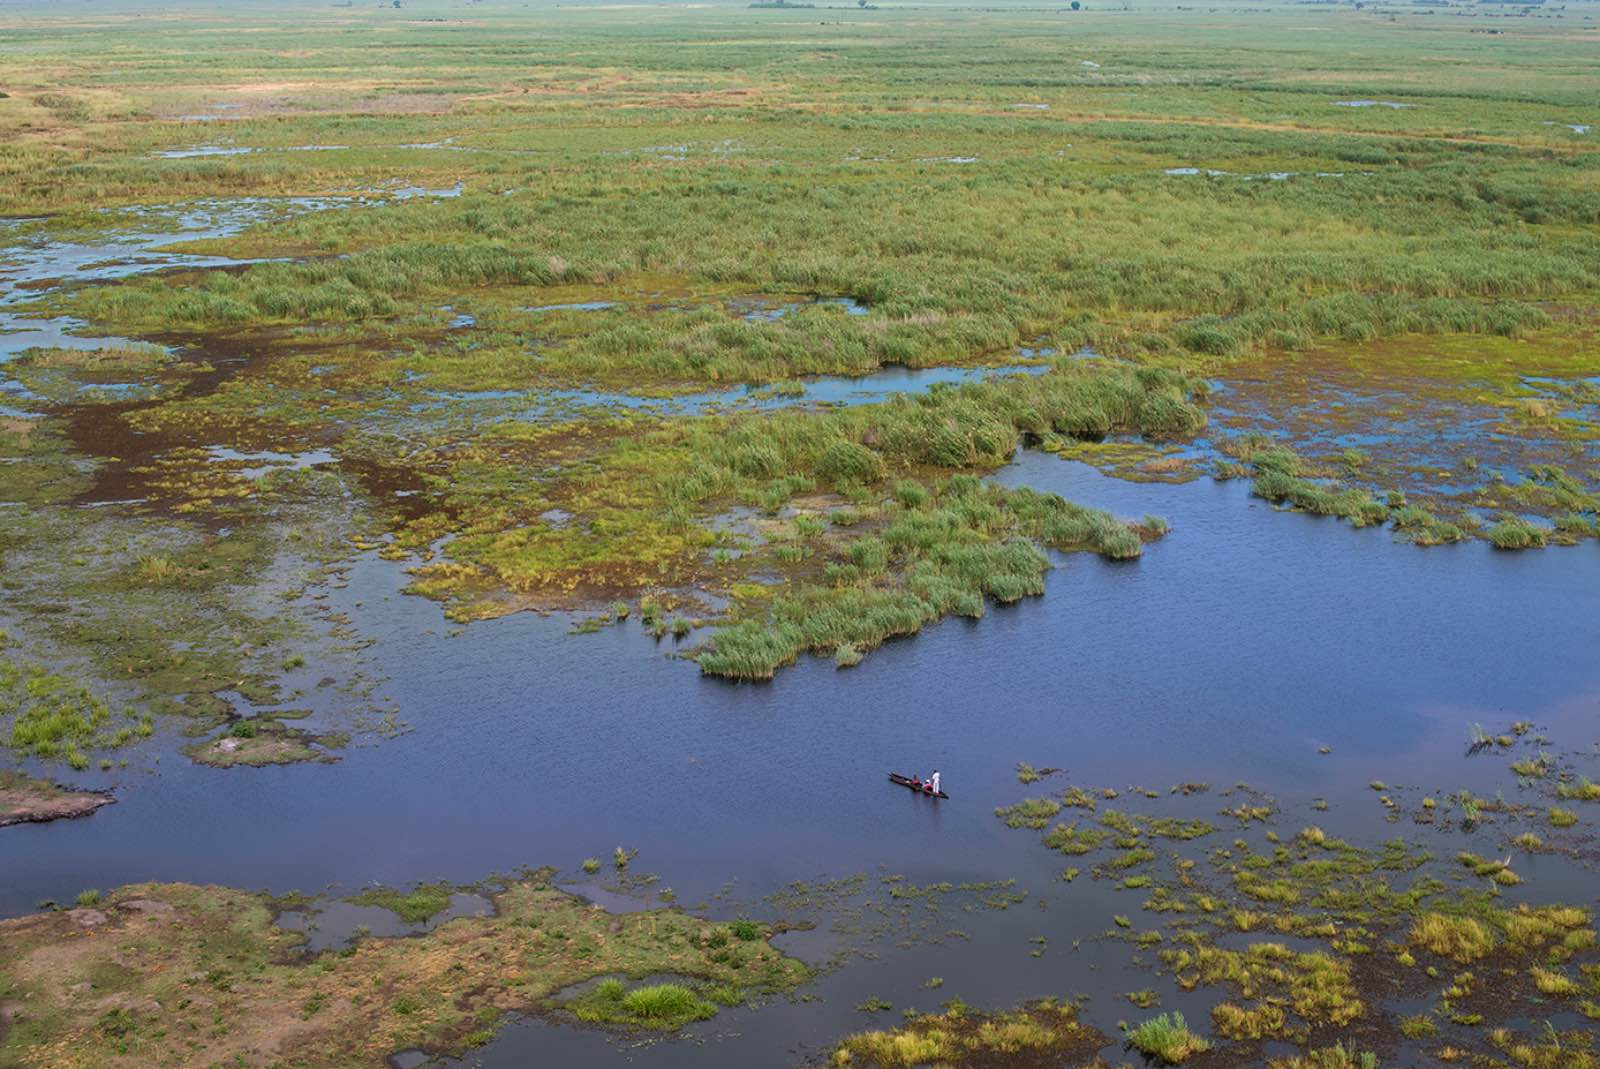 Aerial view of Linyanti swamps with guests on a peaceful mokoro cruise through the lagoon